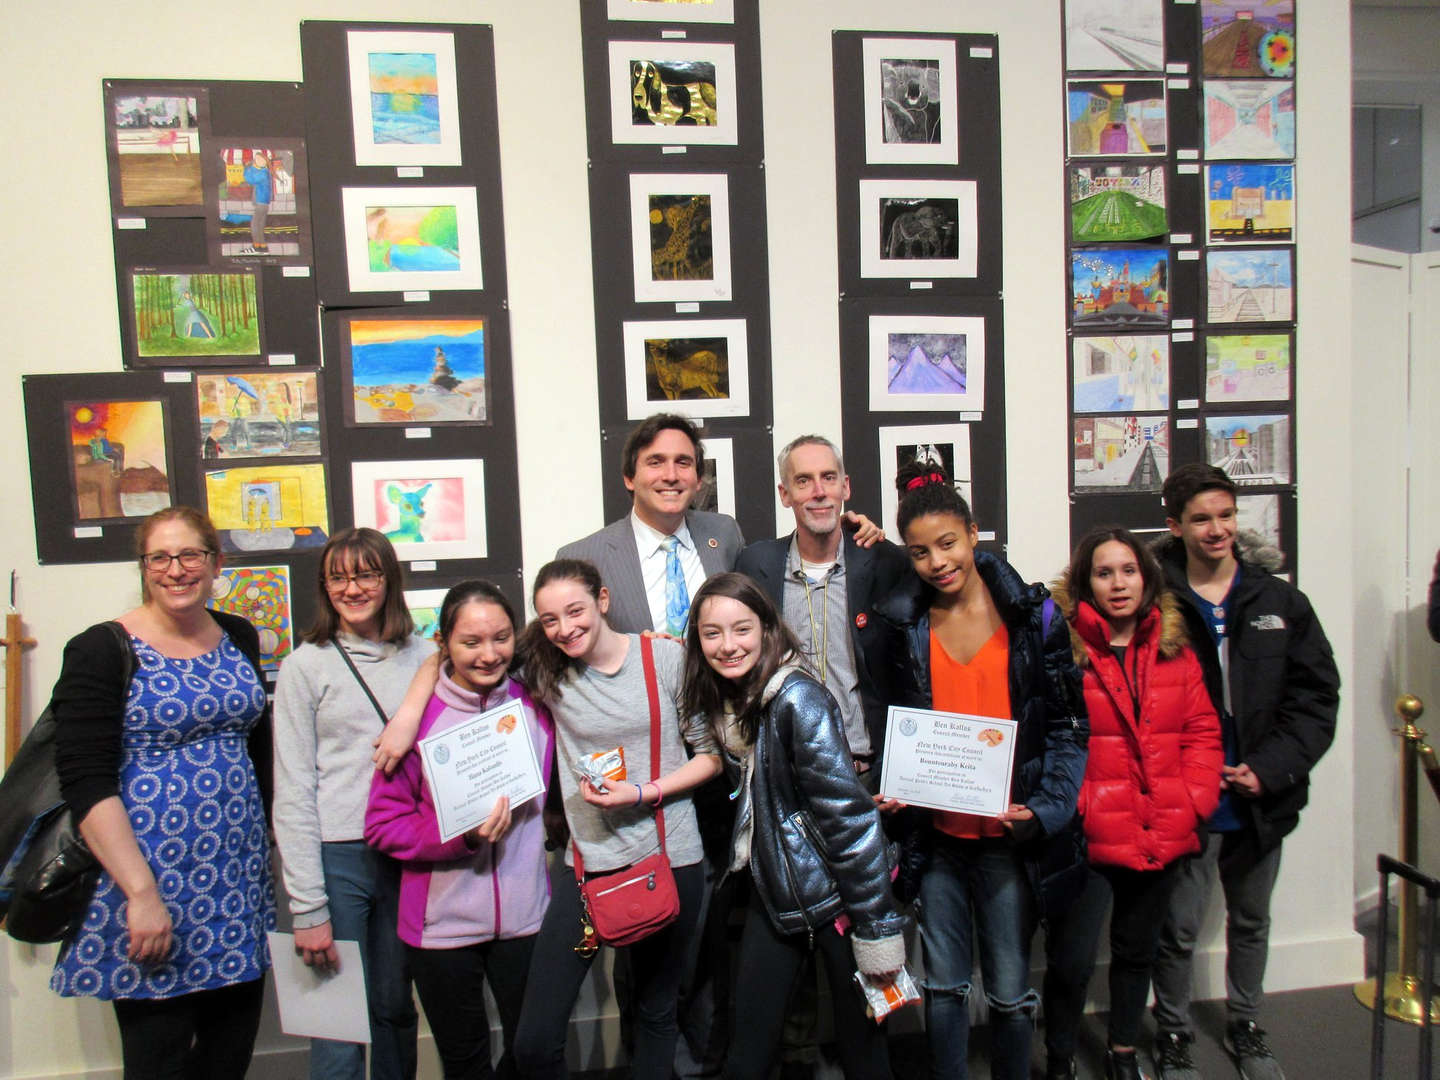 Photo of Principal Getz, Councilman Ben Kallos, and some ESMS students in front of student art at the Sotheby's student art show